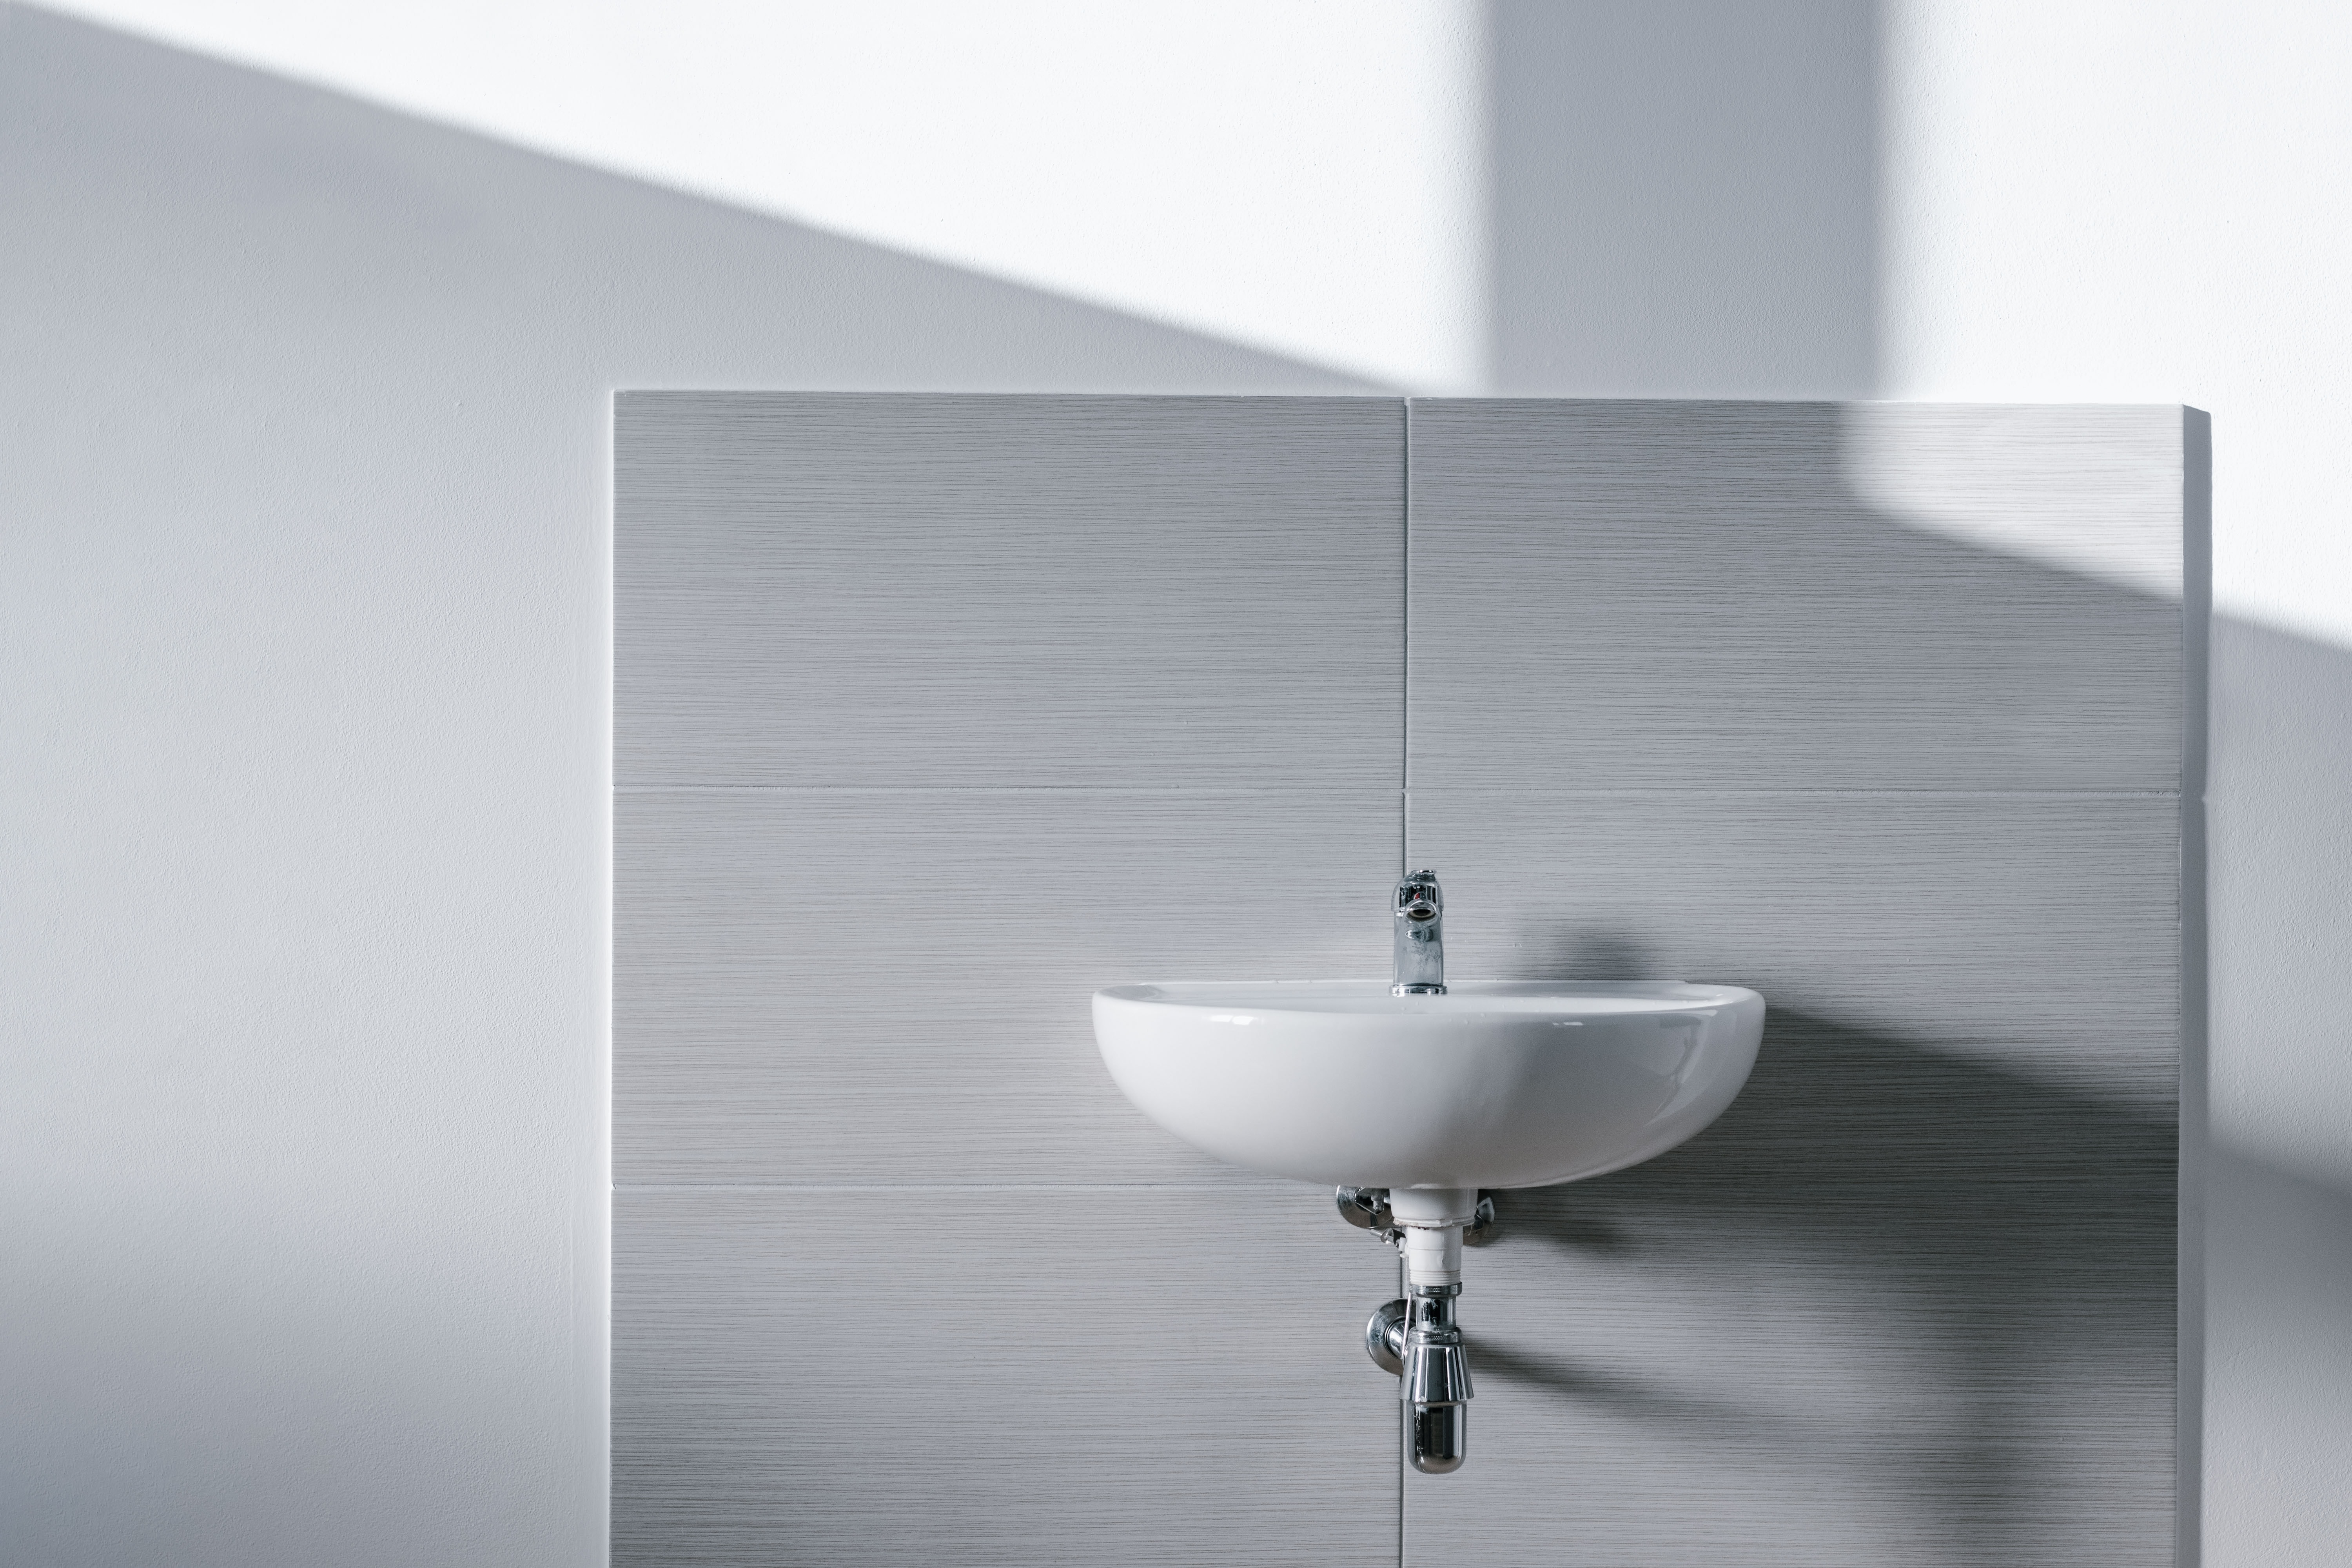 white sink mounted on wall